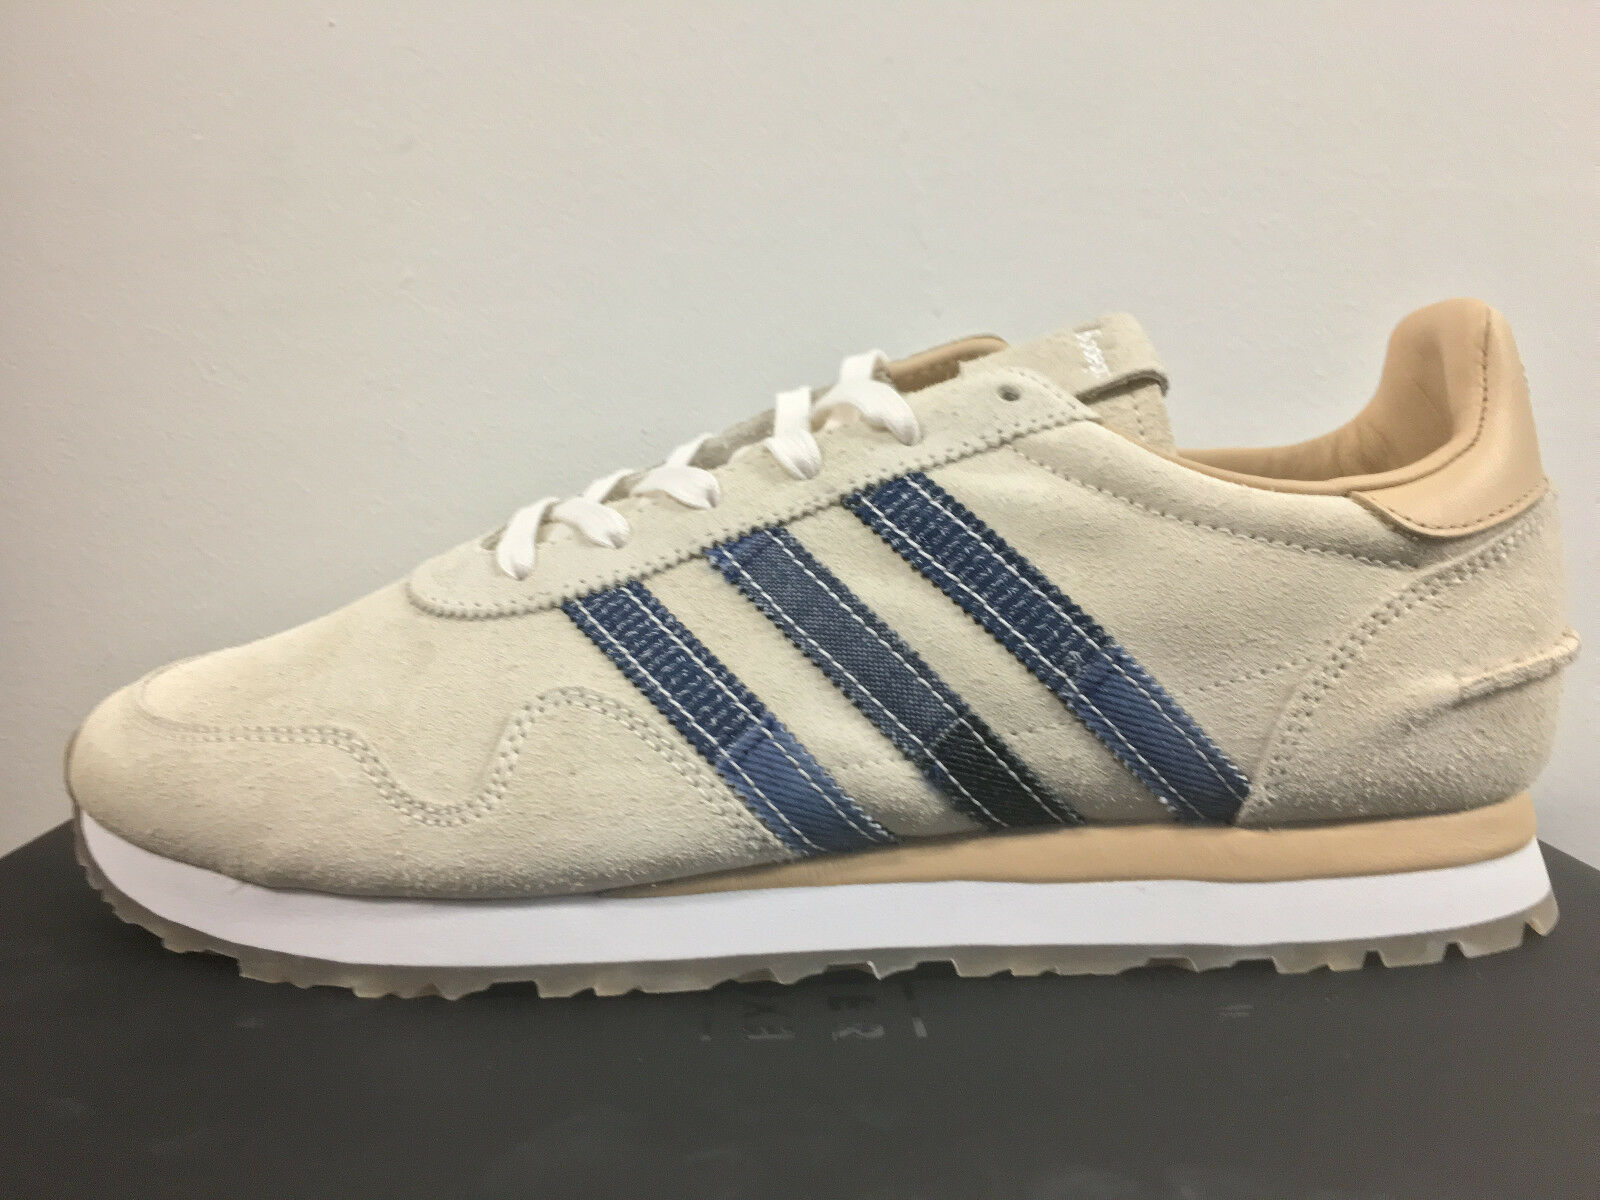 Adidas Consortium X BY2103 Bodega Haven SE Patchwork Gamuza X End Denim BY2103 X 5-13.5 a77e9f